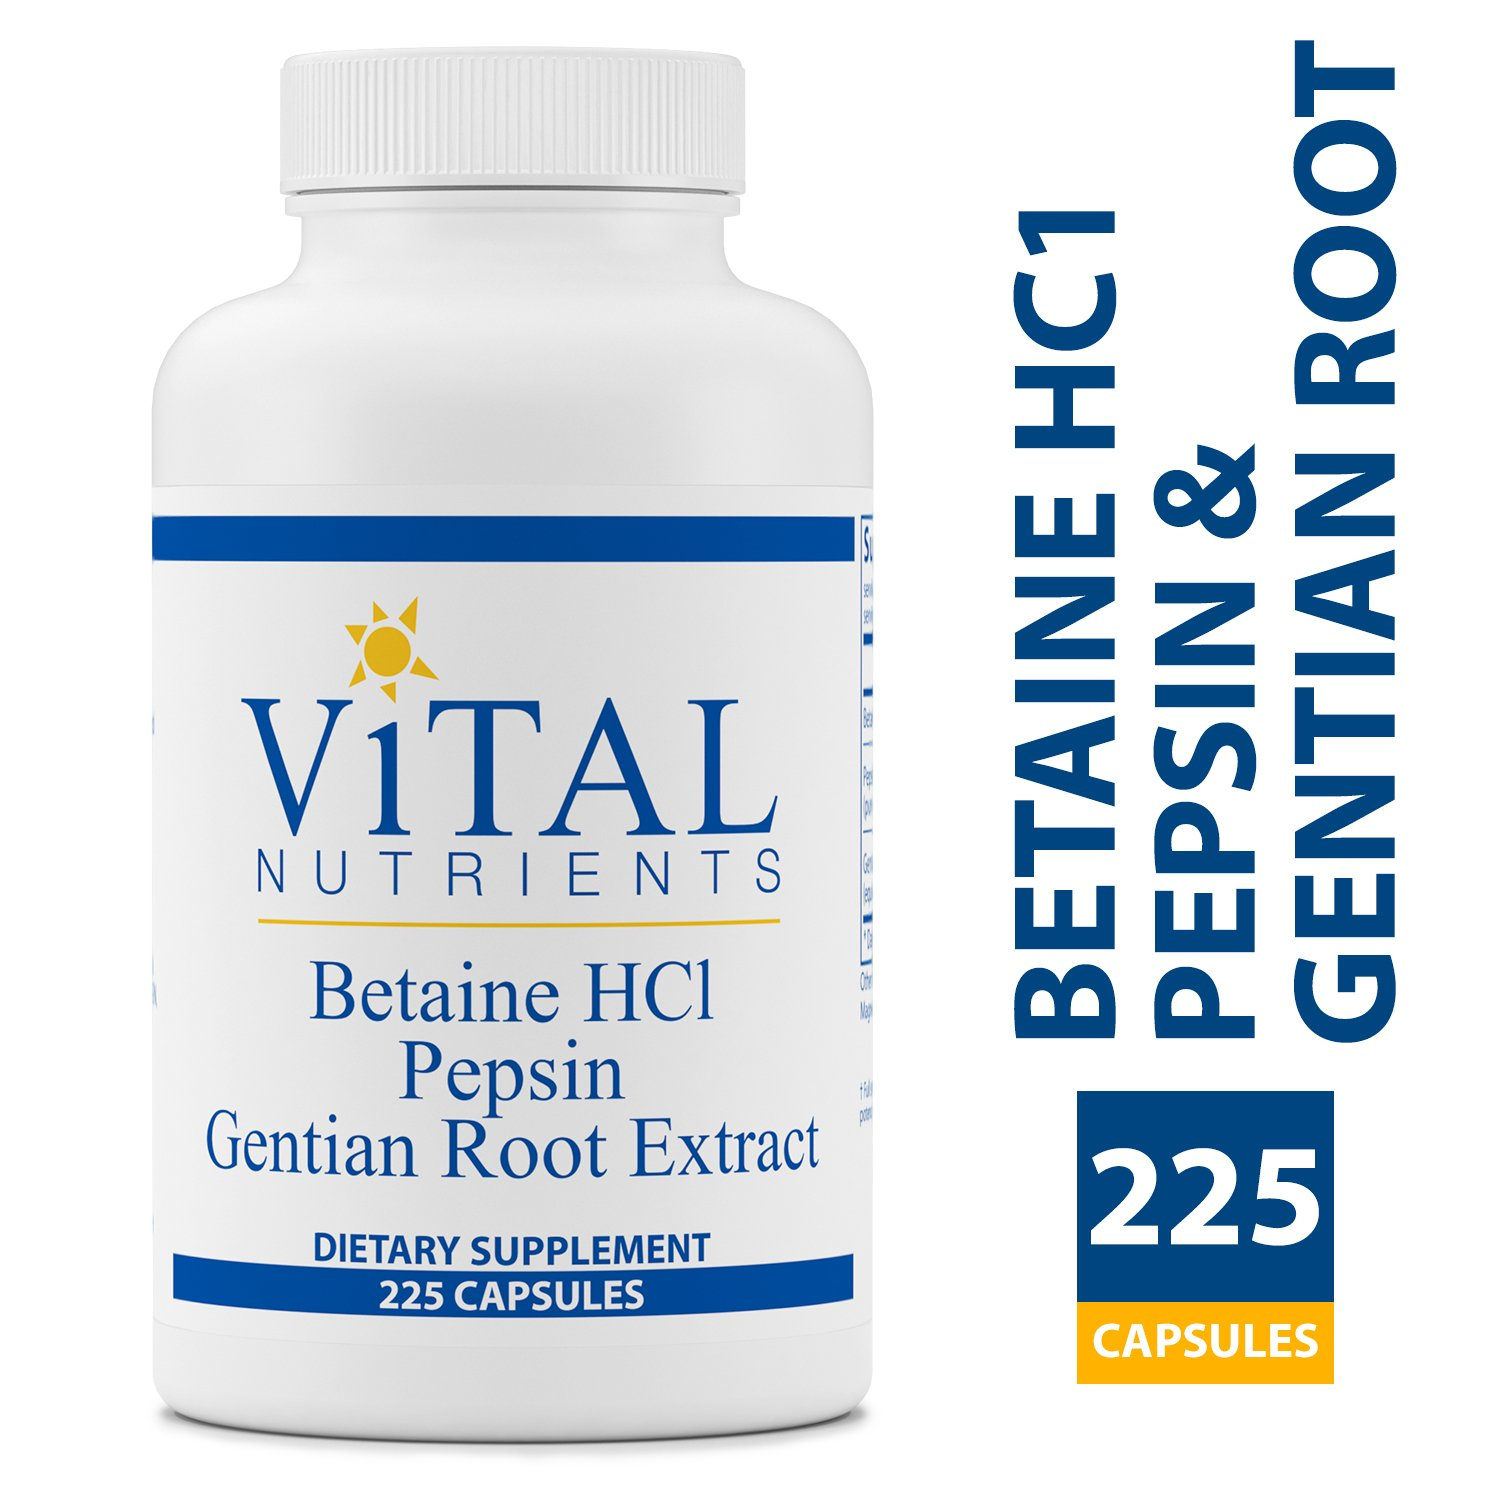 Vital Nutrients - Betaine HCL Pepsin & Gentian Root Extract - Powerful Digestive Support for the Stomach - Gluten Free - 225 Capsules